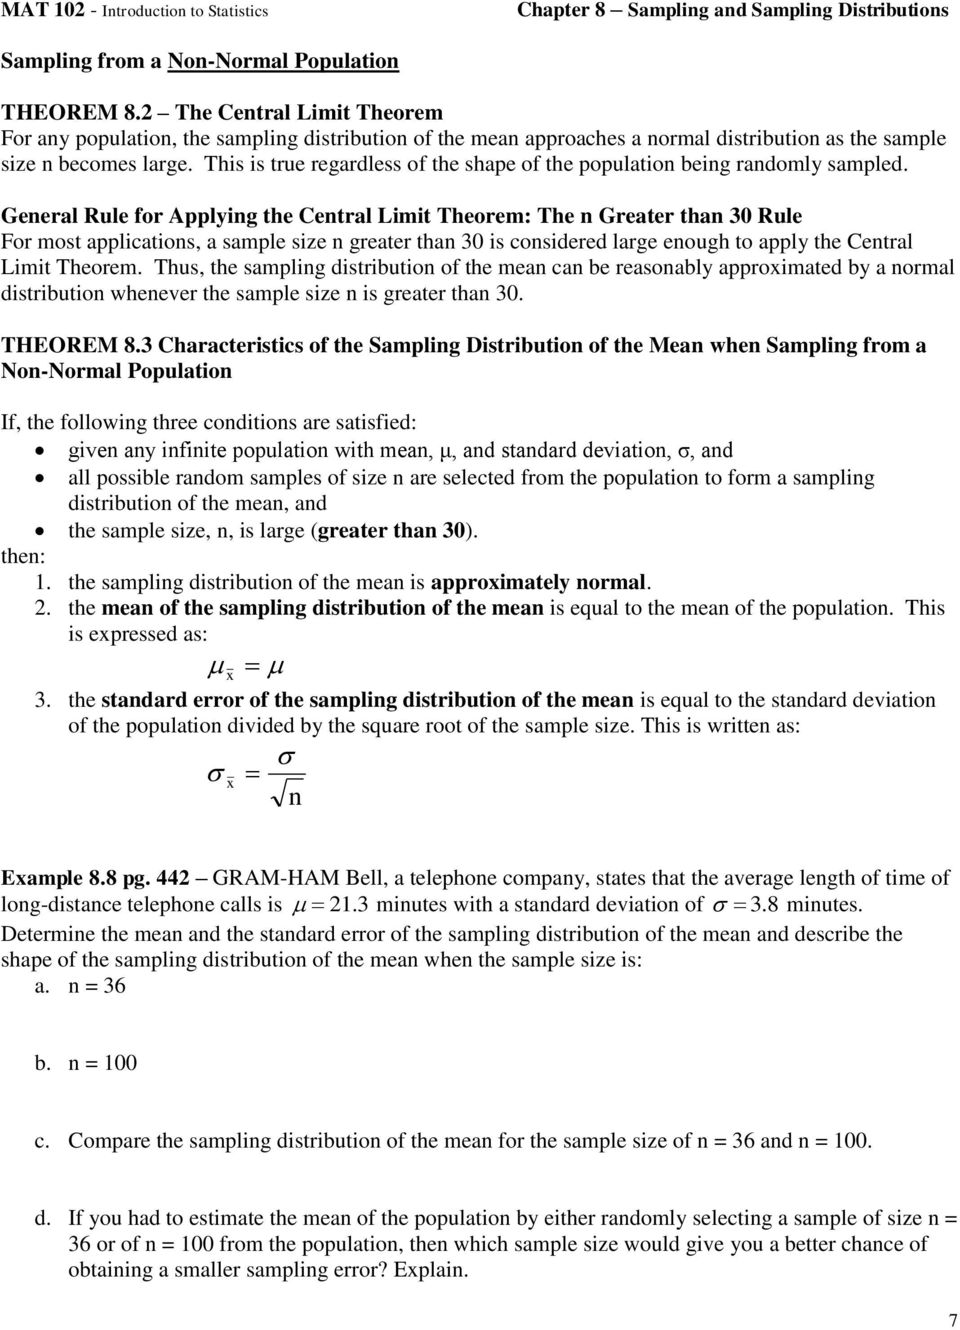 Geeral Rule for Applyig the Cetral Limit Theorem: The Greater tha 30 Rule For most applicatios, a sample size greater tha 30 is cosidered large eough to apply the Cetral Limit Theorem.